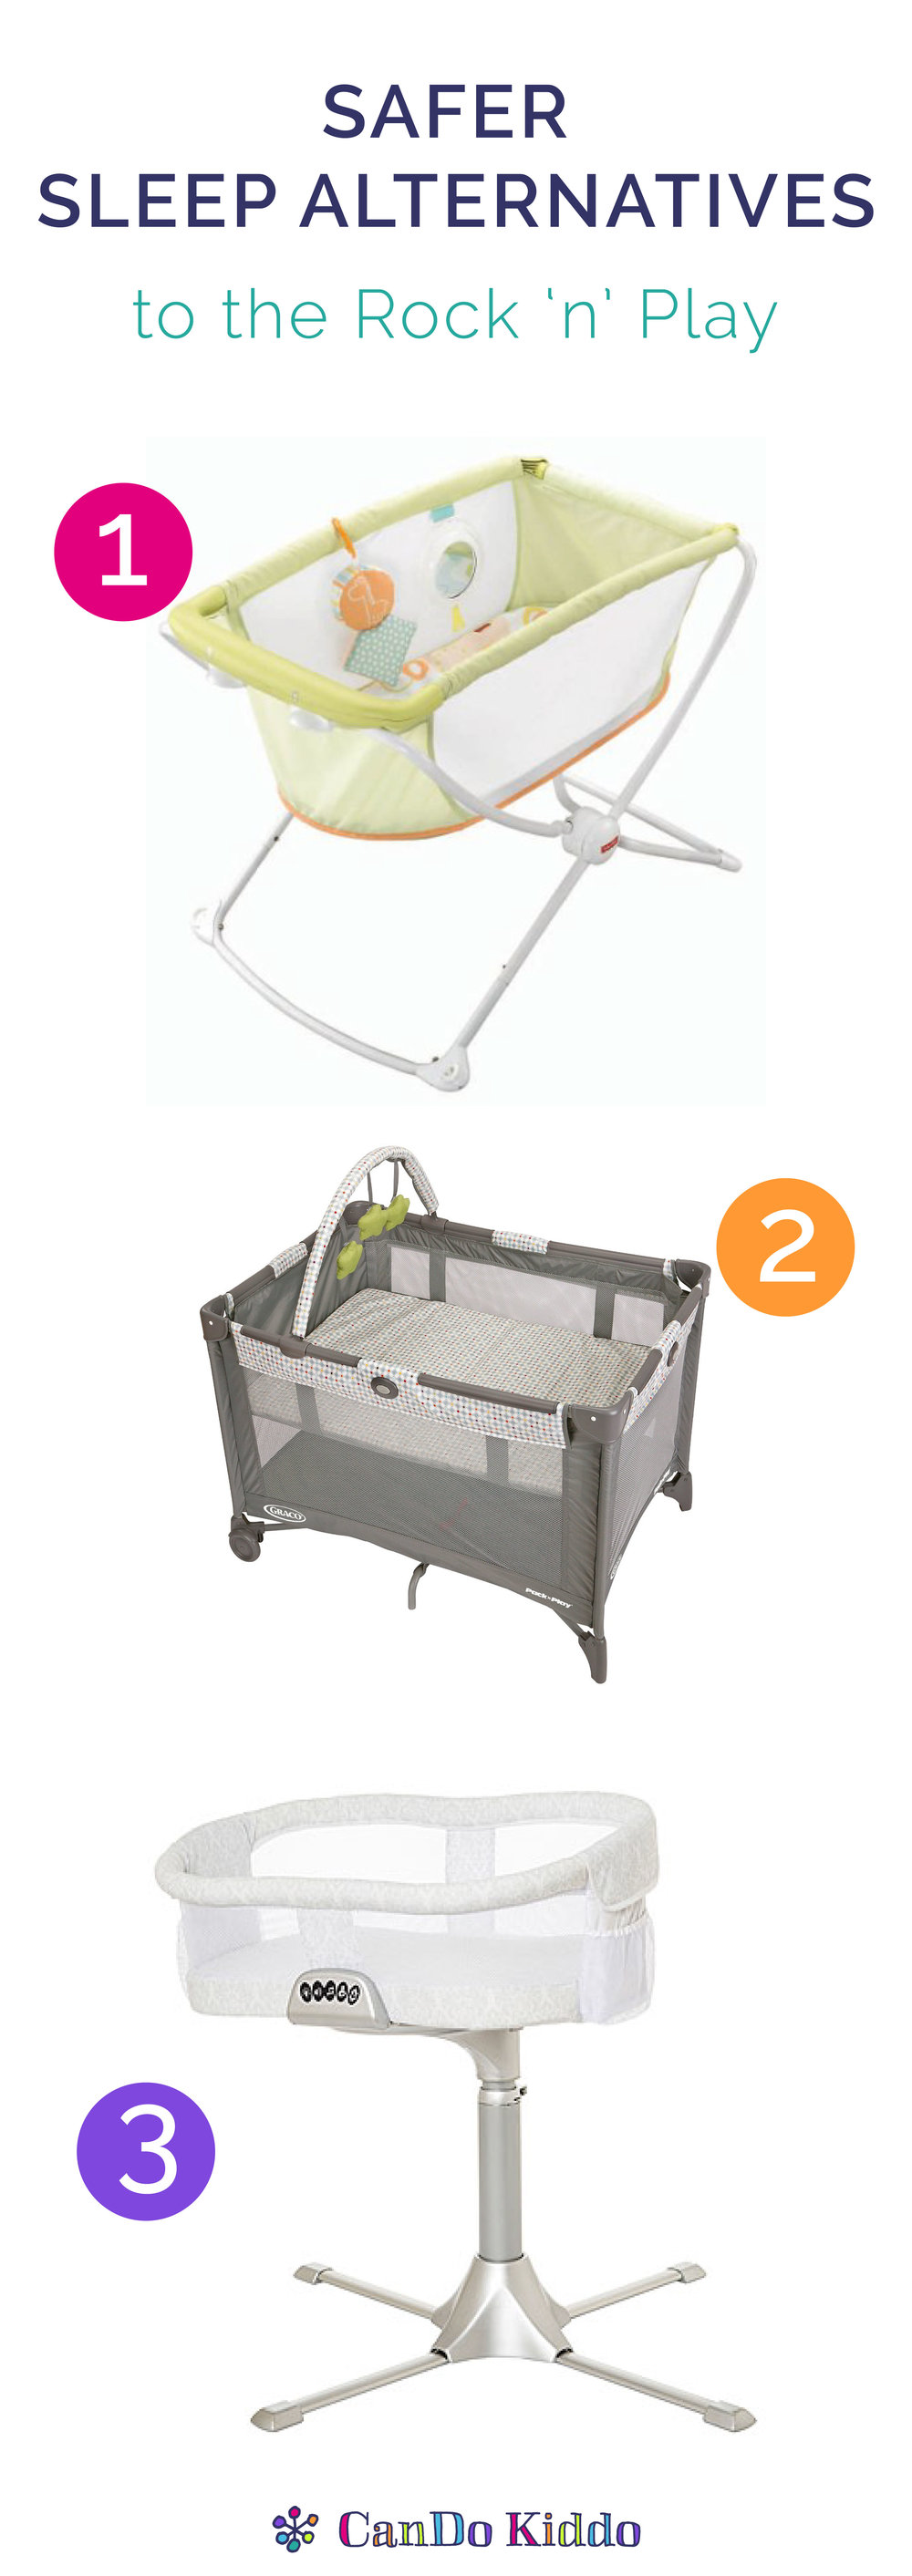 for price deluxe some is n sleeper safety best fisher vibrating and newborn why babies rock play